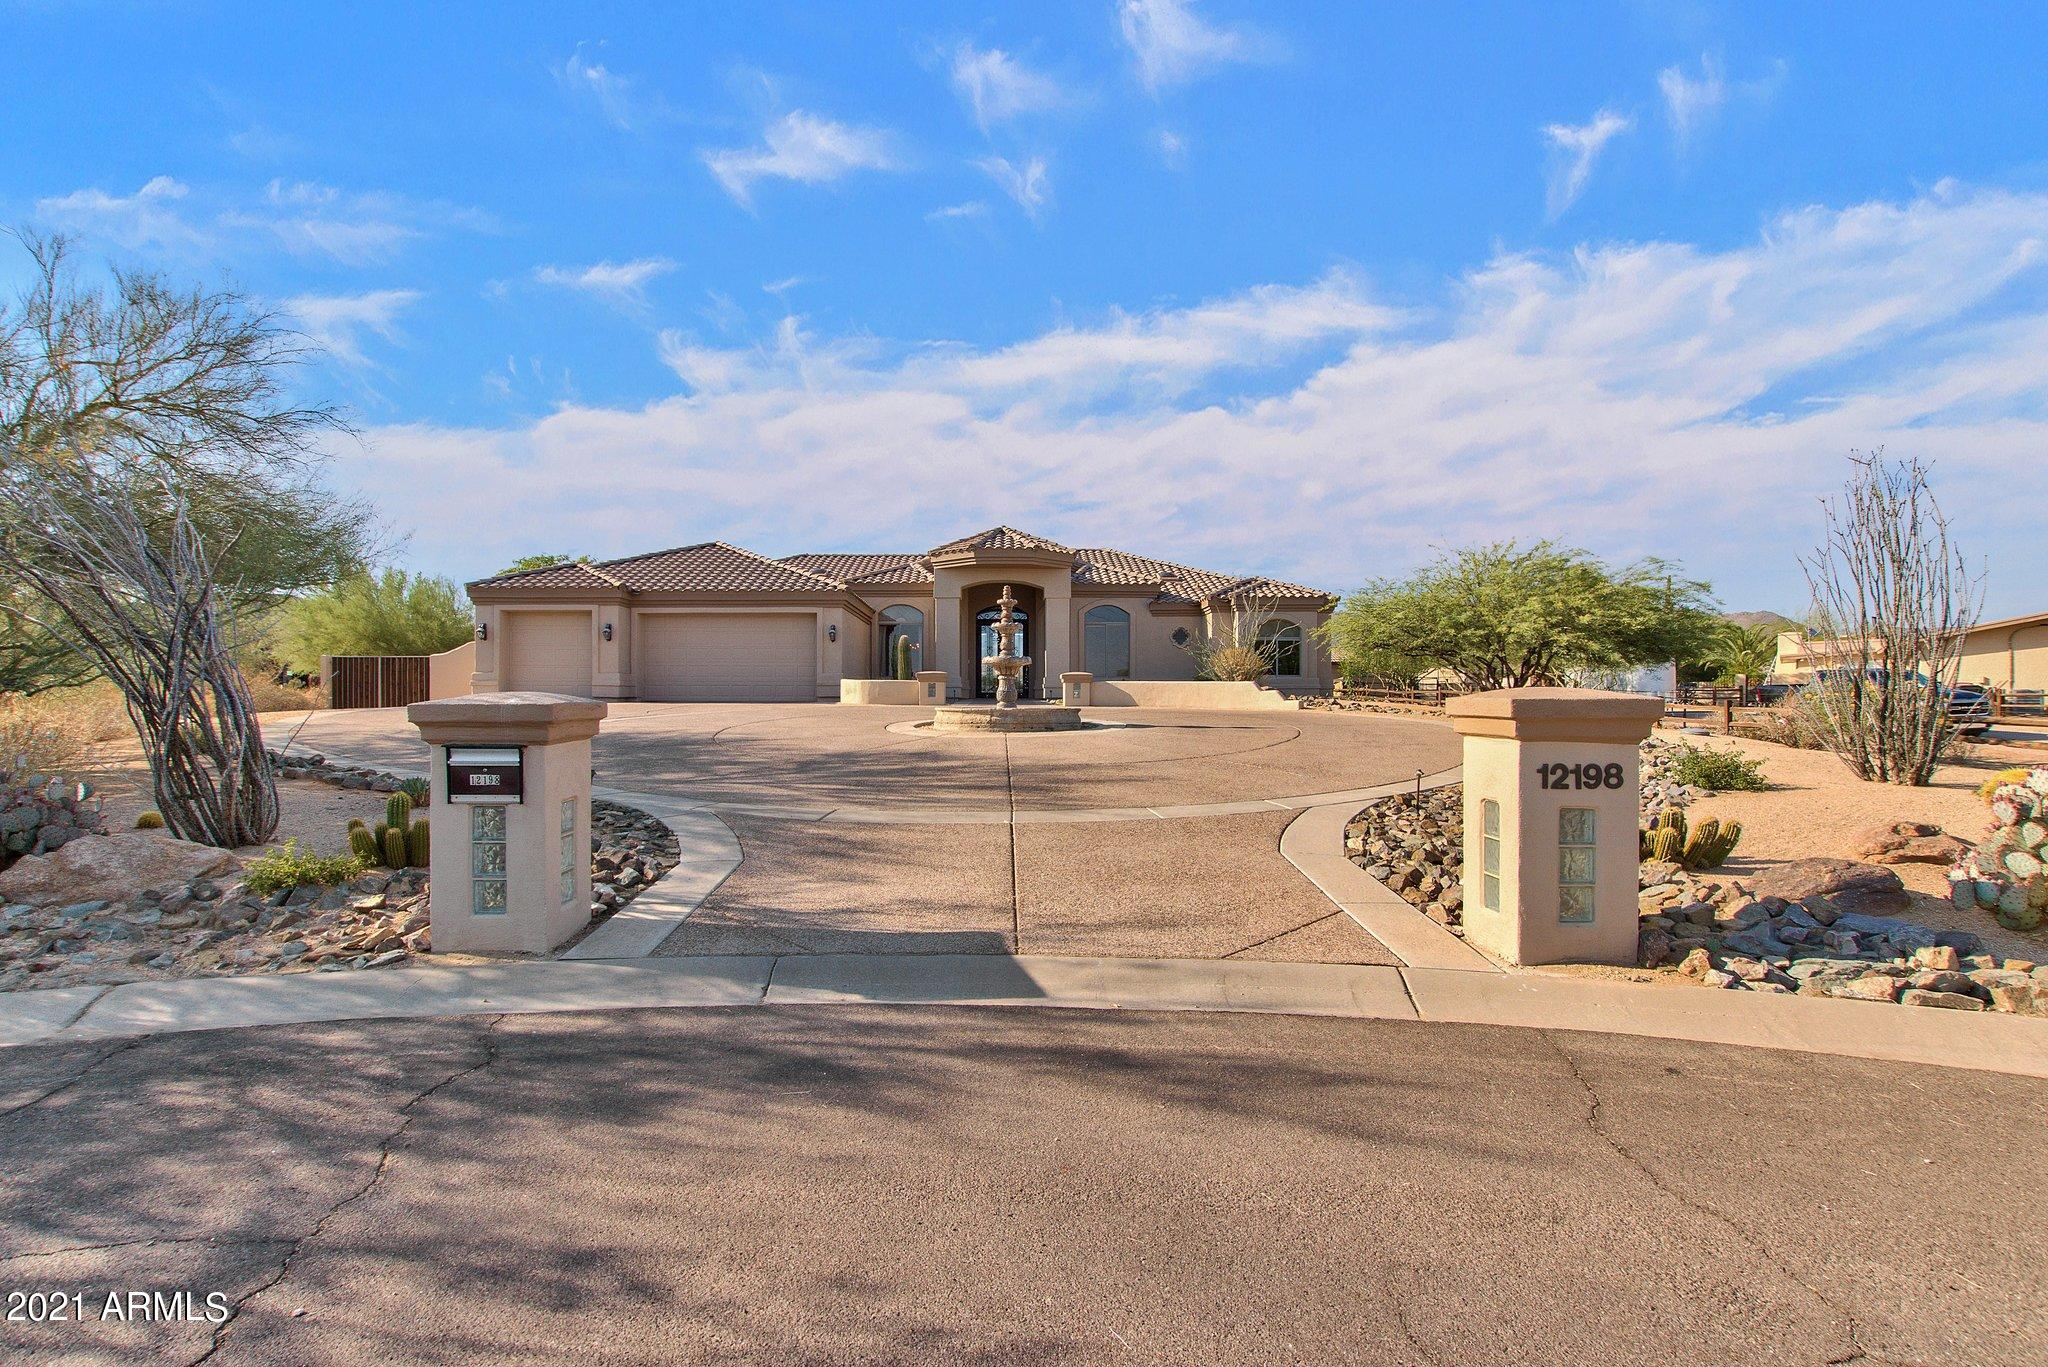 12198 DOUBLETREE RANCH Road